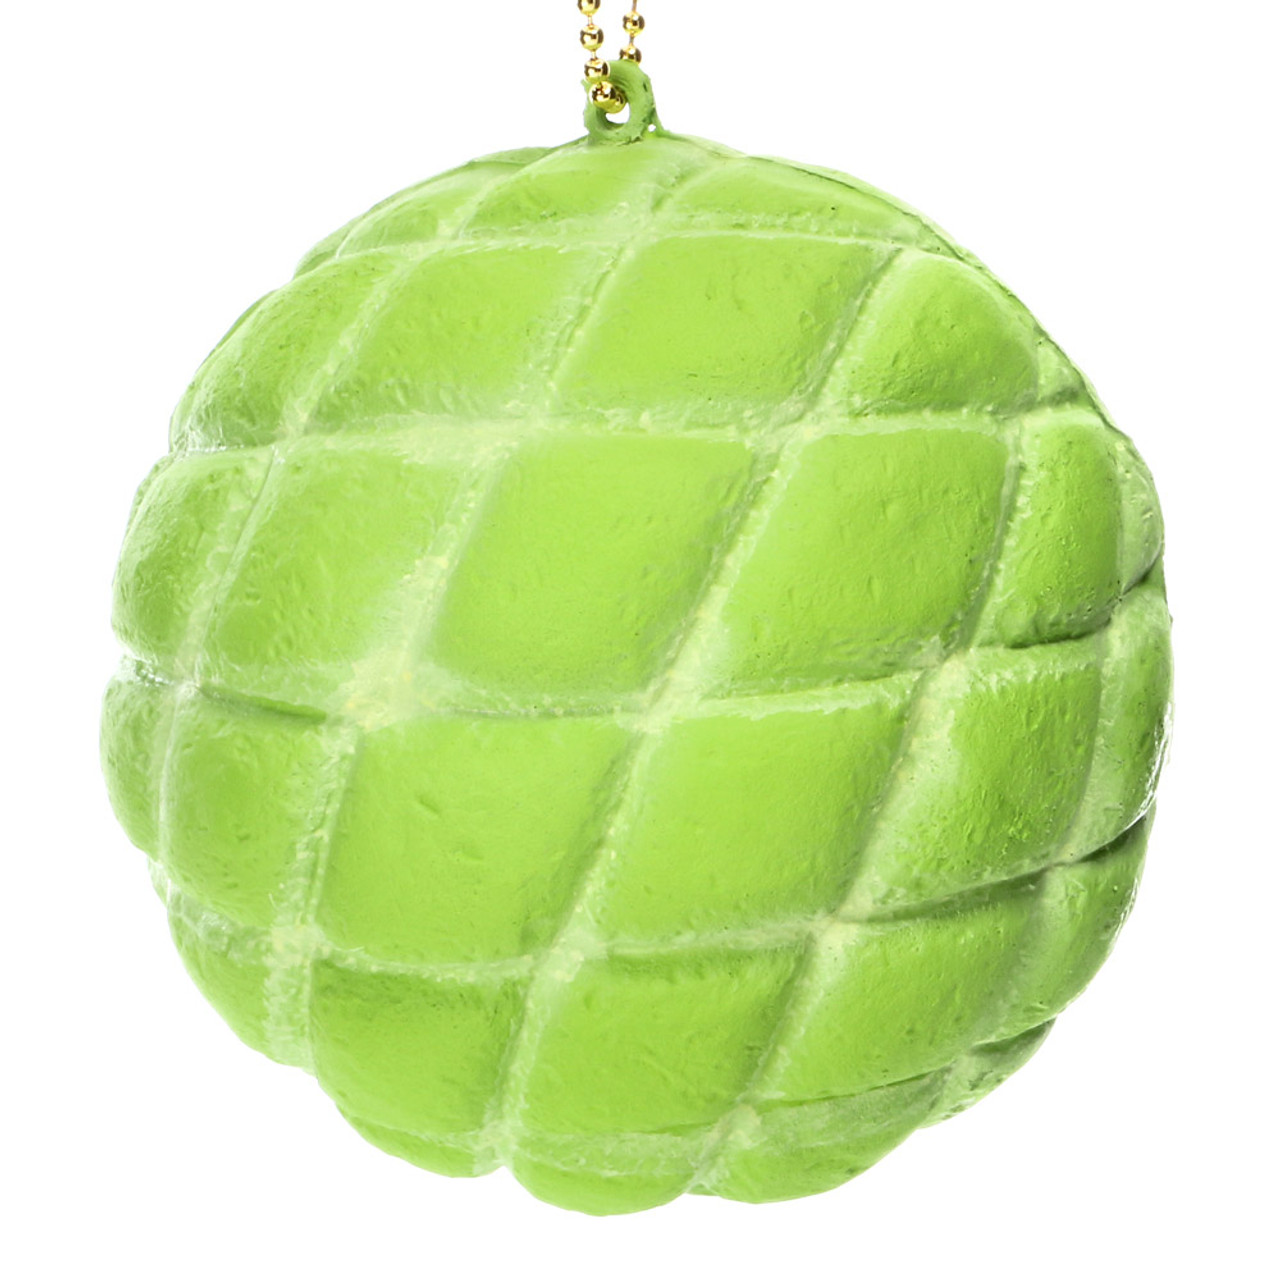 Cafe De N Green Cantaloupe Melonpan Squishy Toys Charms Cute Wares Learn how to prepare this easy cantaloupe green smoothie recipe like a pro. cafe de n green cantaloupe melonpan squishy toys charms